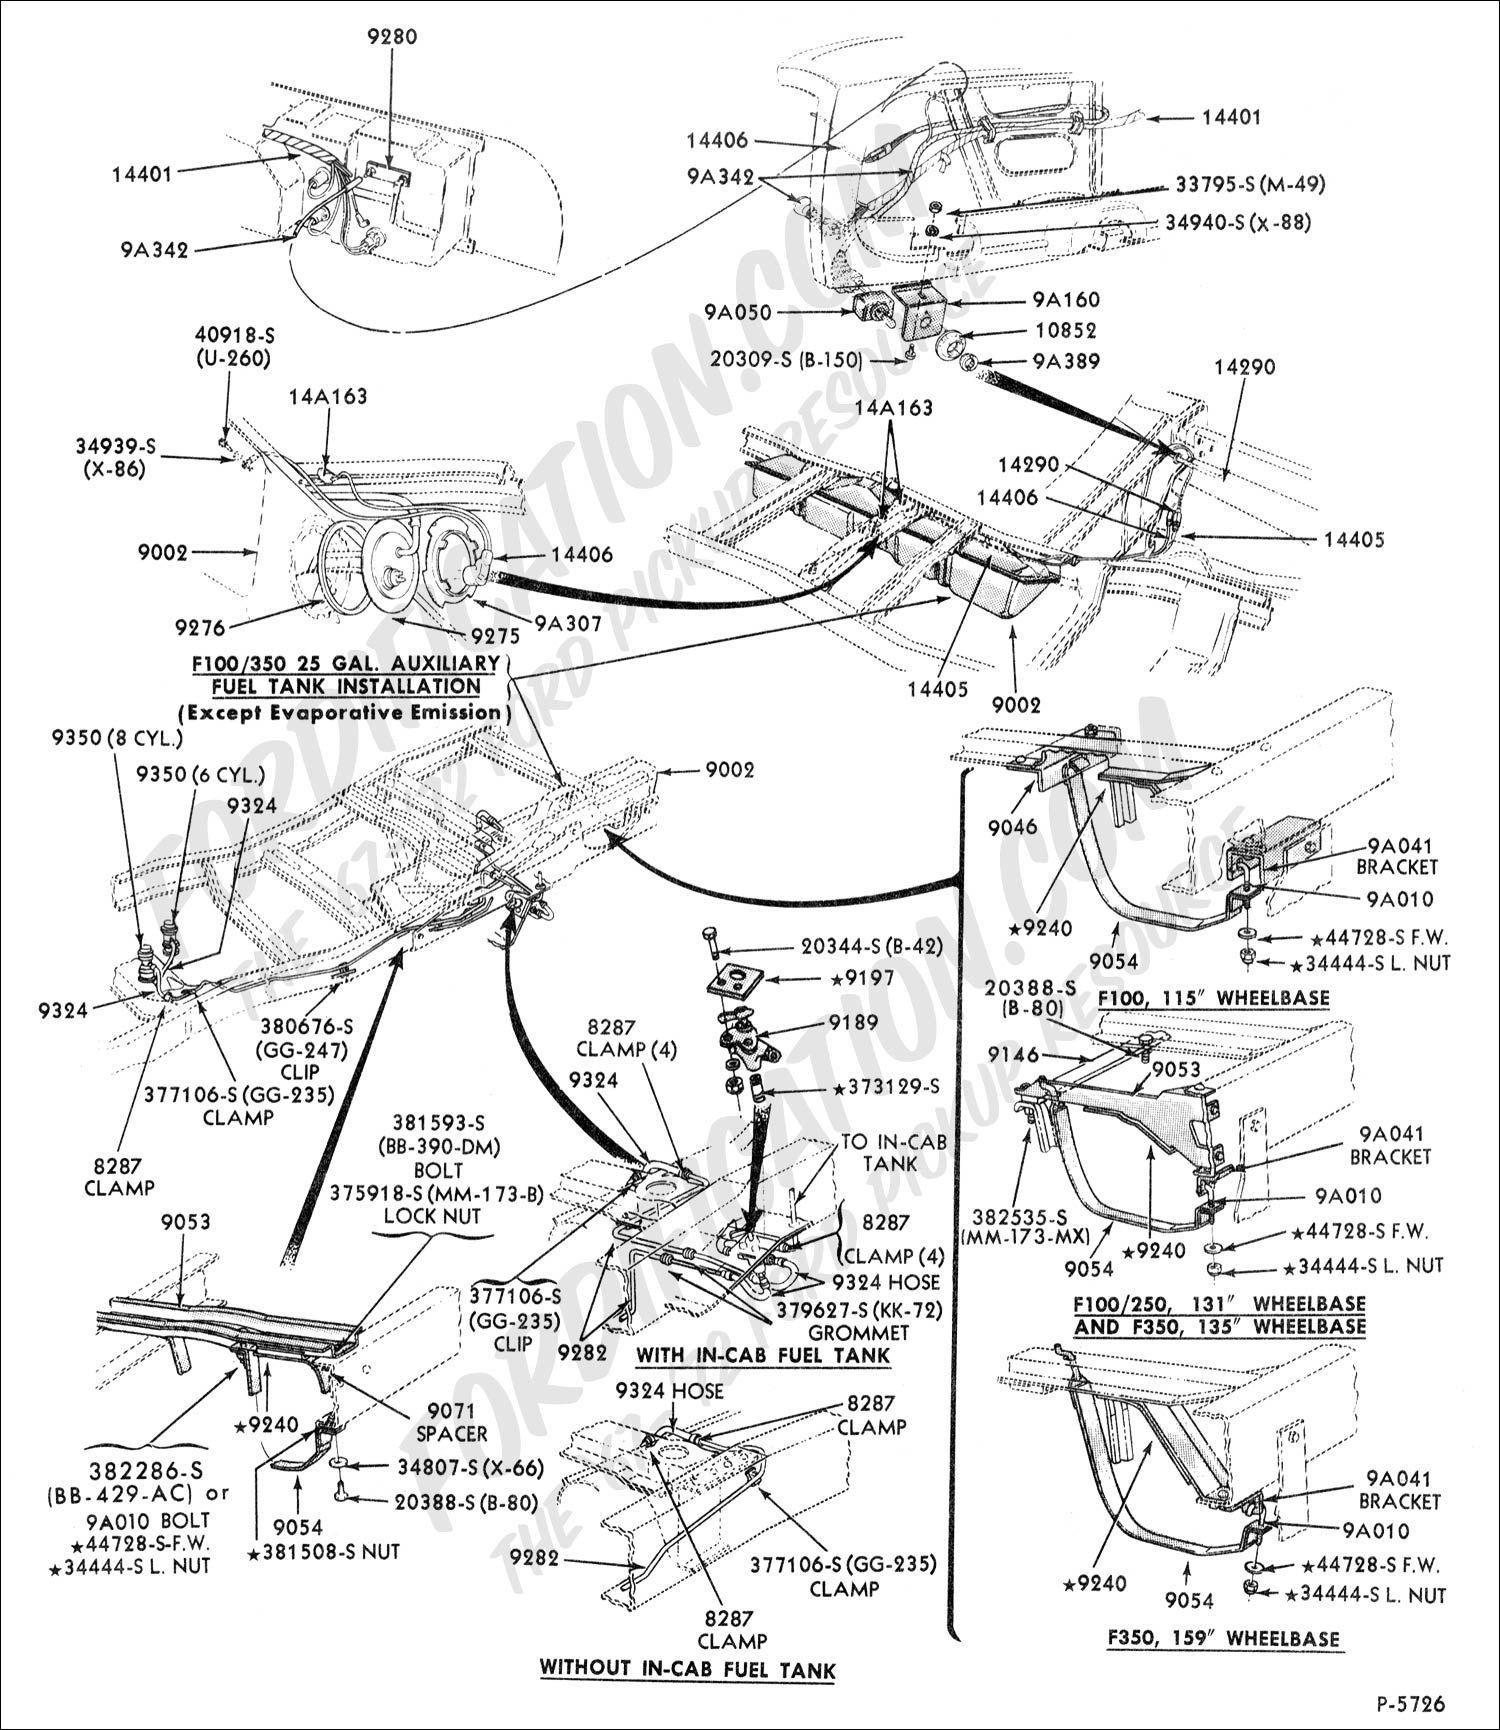 1990 ford mustang fuel system diagram - wiring diagrams fat-tunnel -  fat-tunnel.alcuoredeldiabete.it  al cuore del diabete